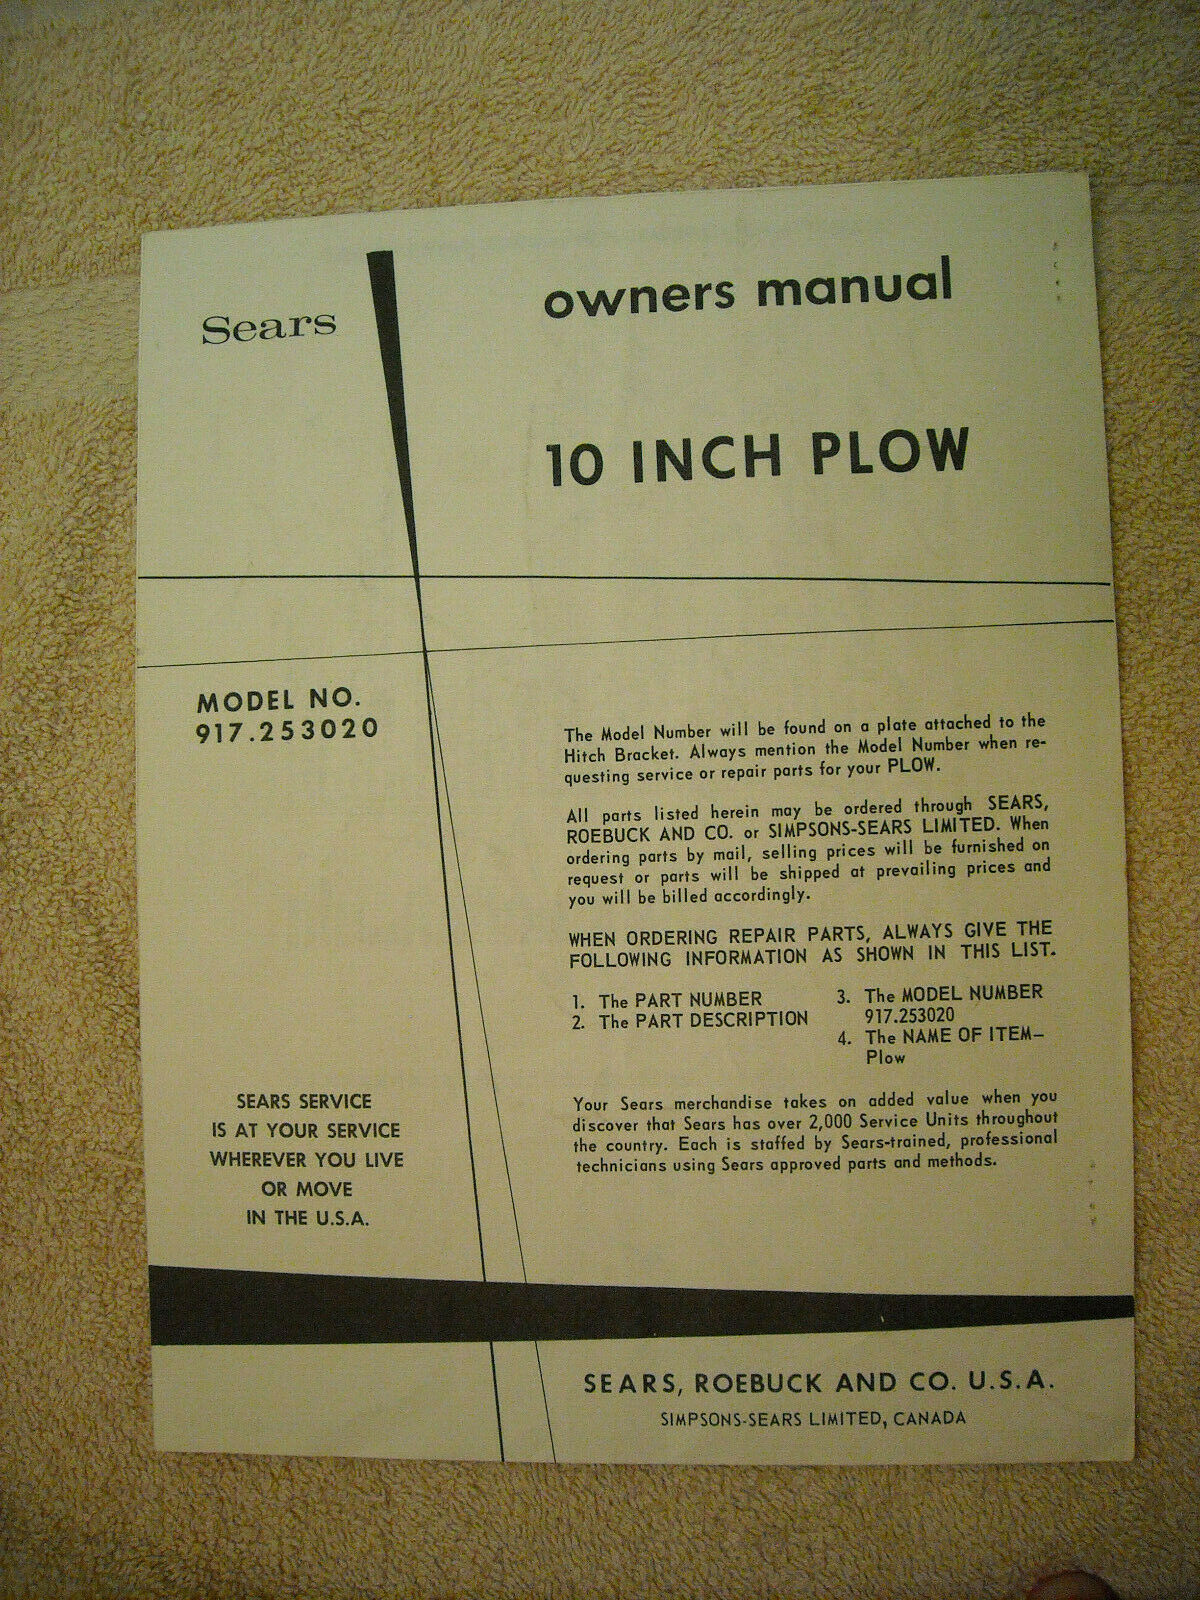 Sears owners manual for model 917 253020 10 Inch Plow